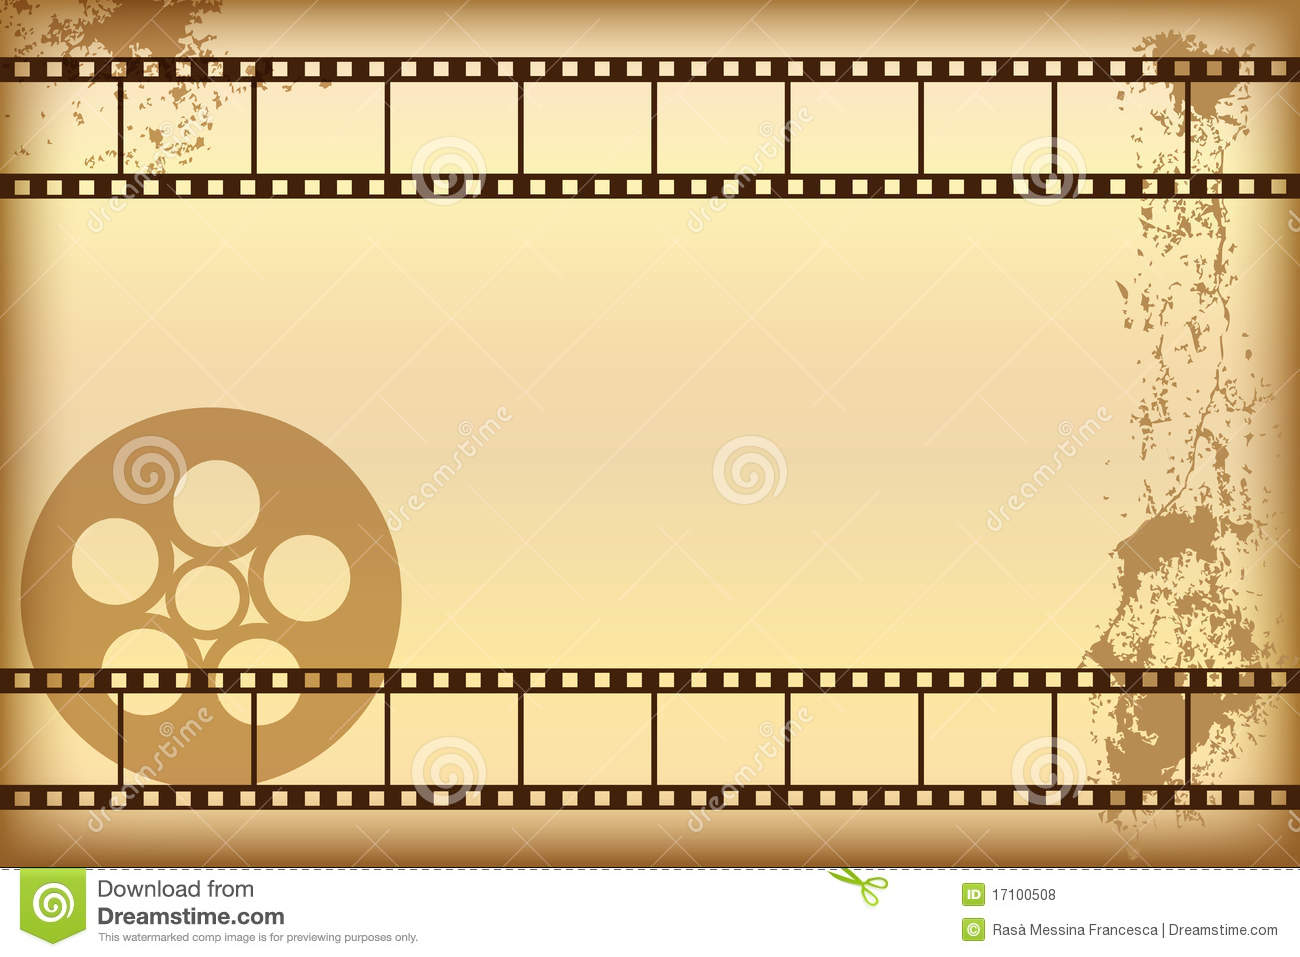 Grunge movie background stock vector. Image of dirty ...